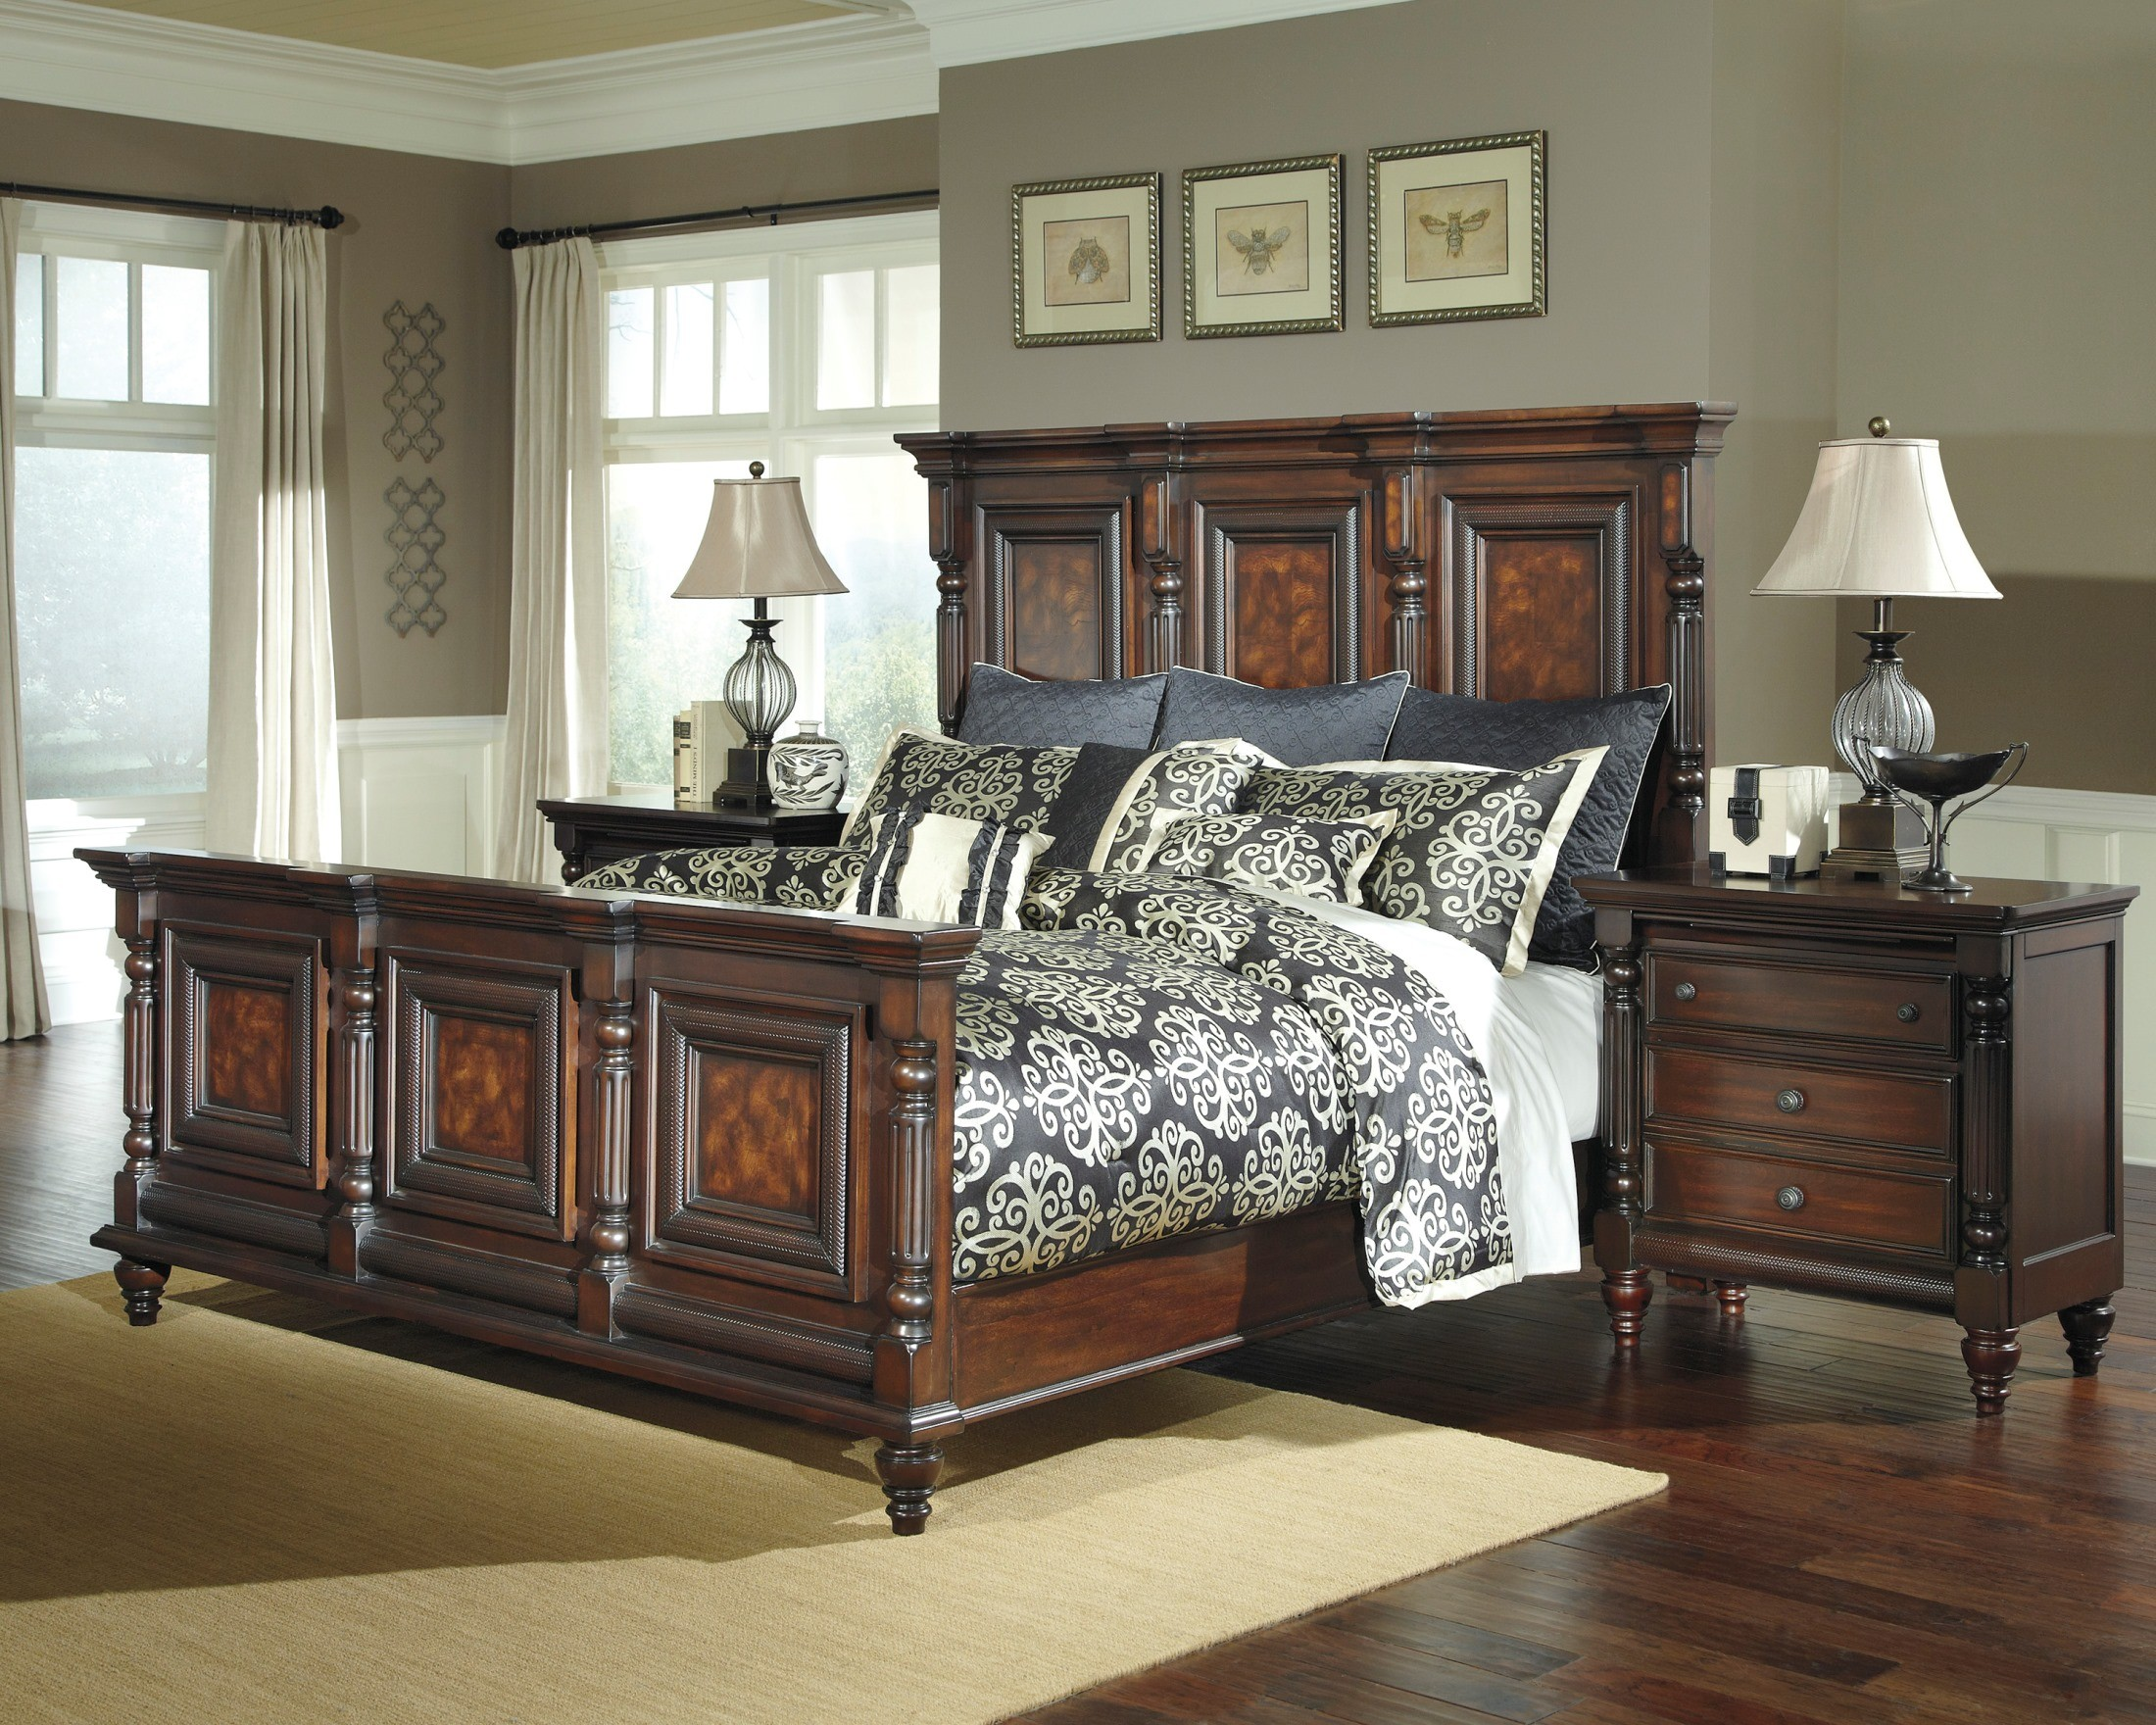 Key town mansion bedroom set b668 157 154 96 ashley furniture - Key town bedroom set ...